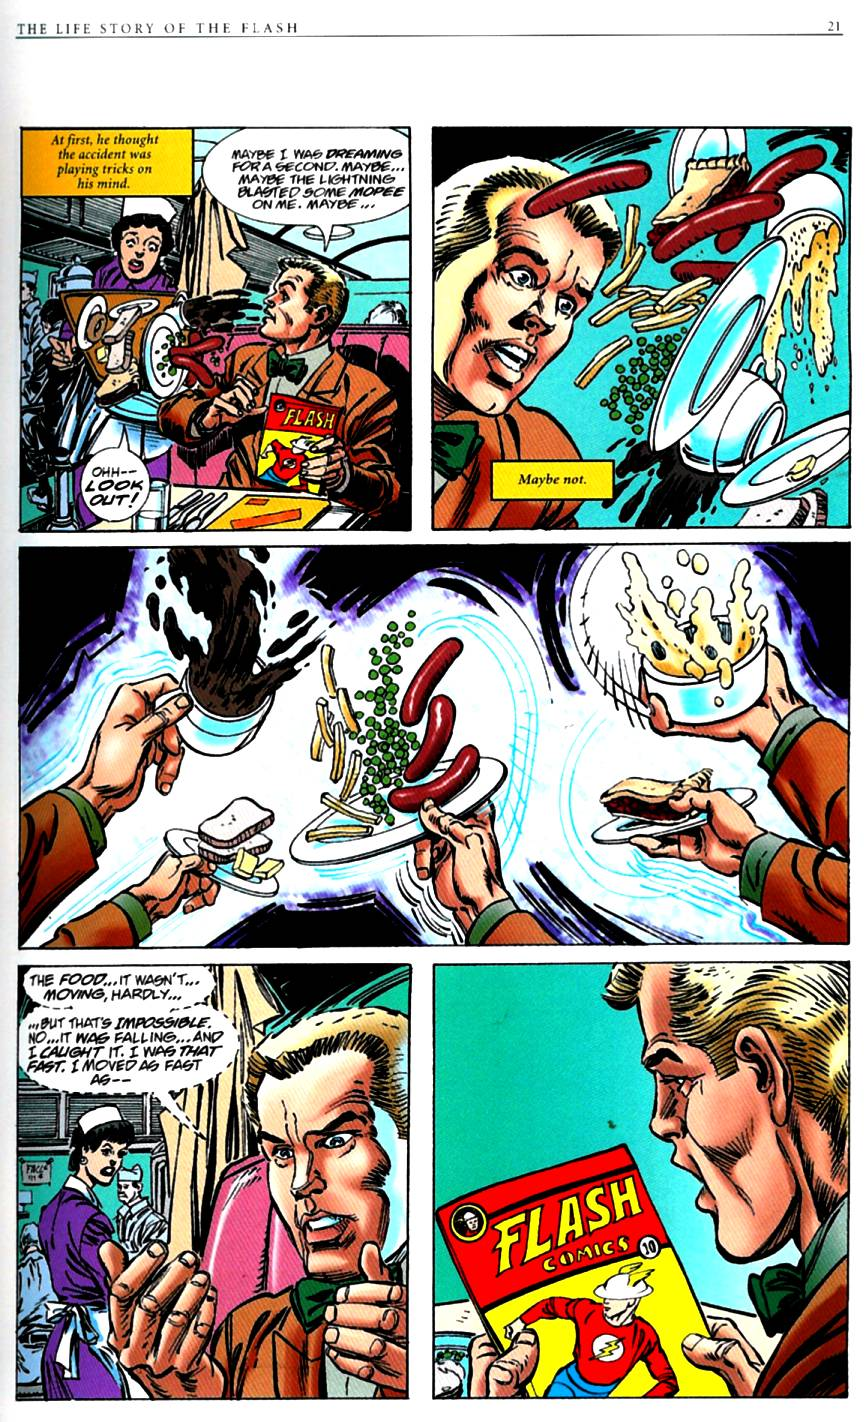 Read online The Life Story of the Flash comic -  Issue # Full - 23